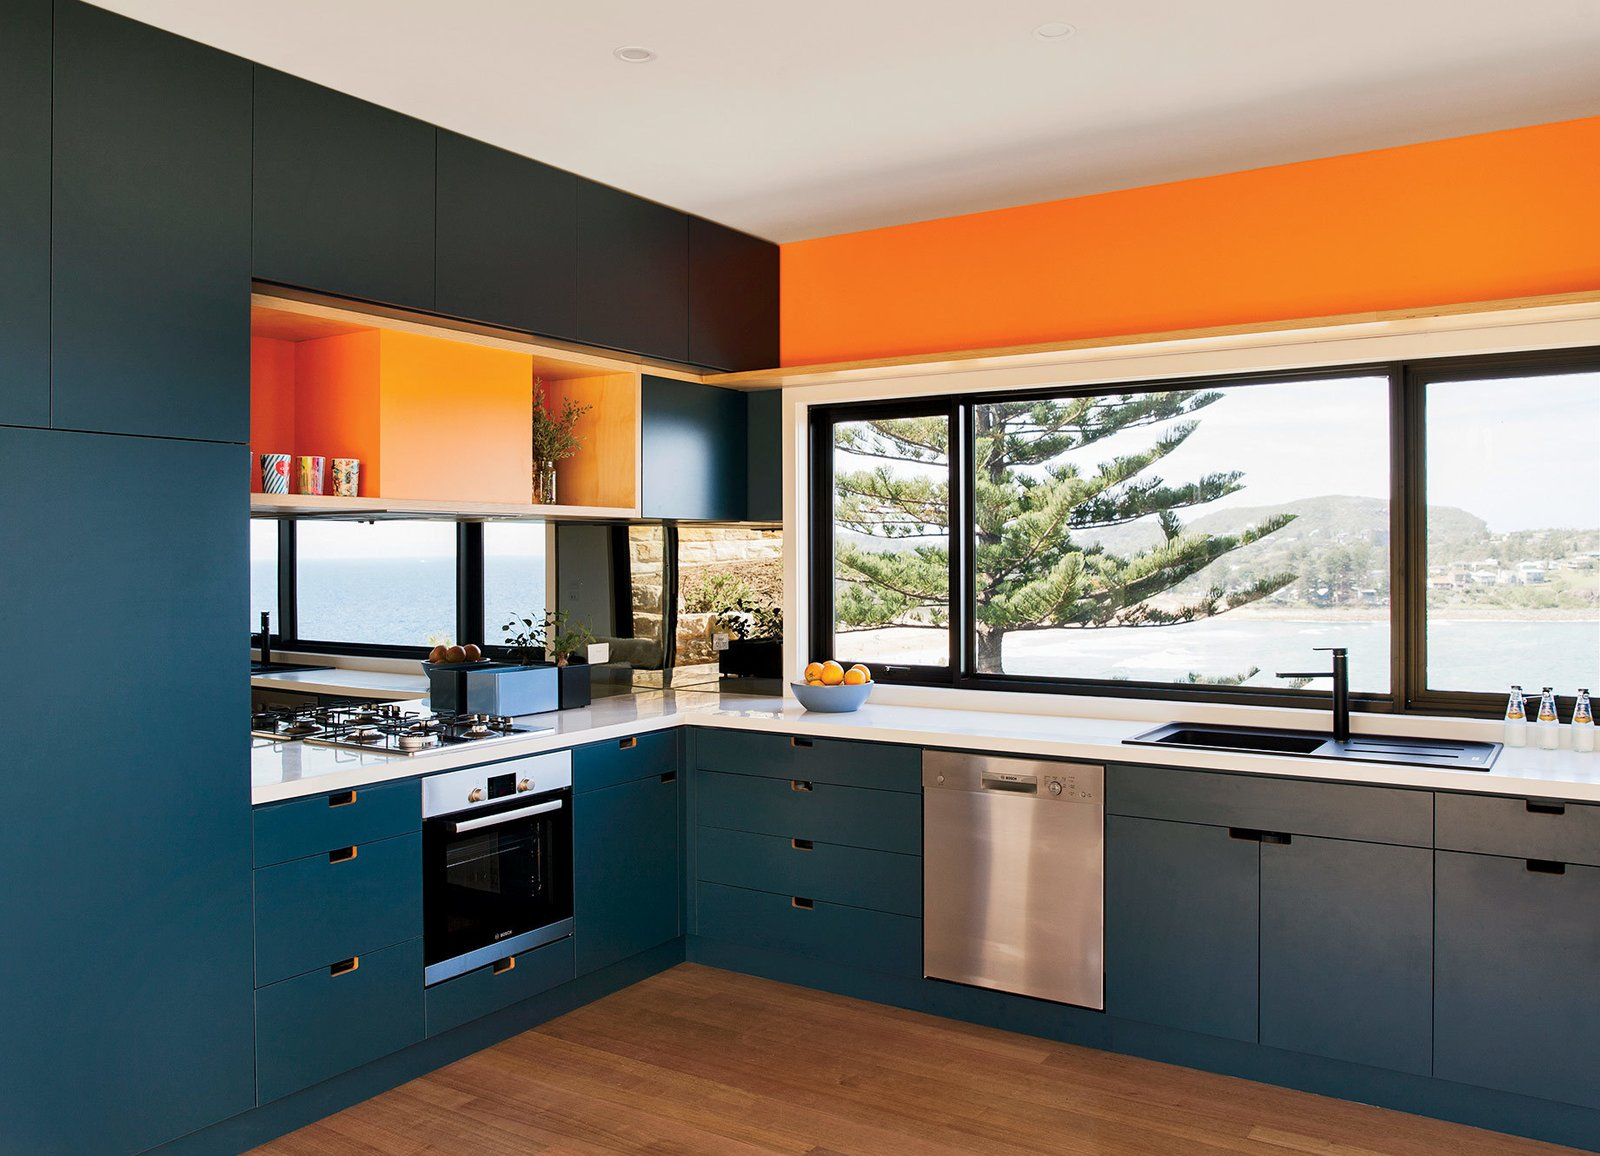 Kitchen, Dishwasher, Colorful Cabinet, Range, Drop In Sink, and Medium Hardwood Floor Inspired by the sea and sand, the couple chose blue and orange joinery colors. The oven, cooktop, range hood, and dishwasher are by Bosch.  Photo 2 of 4 in A Dramatic Cliffside Prefab Steps from the Beach in Australia